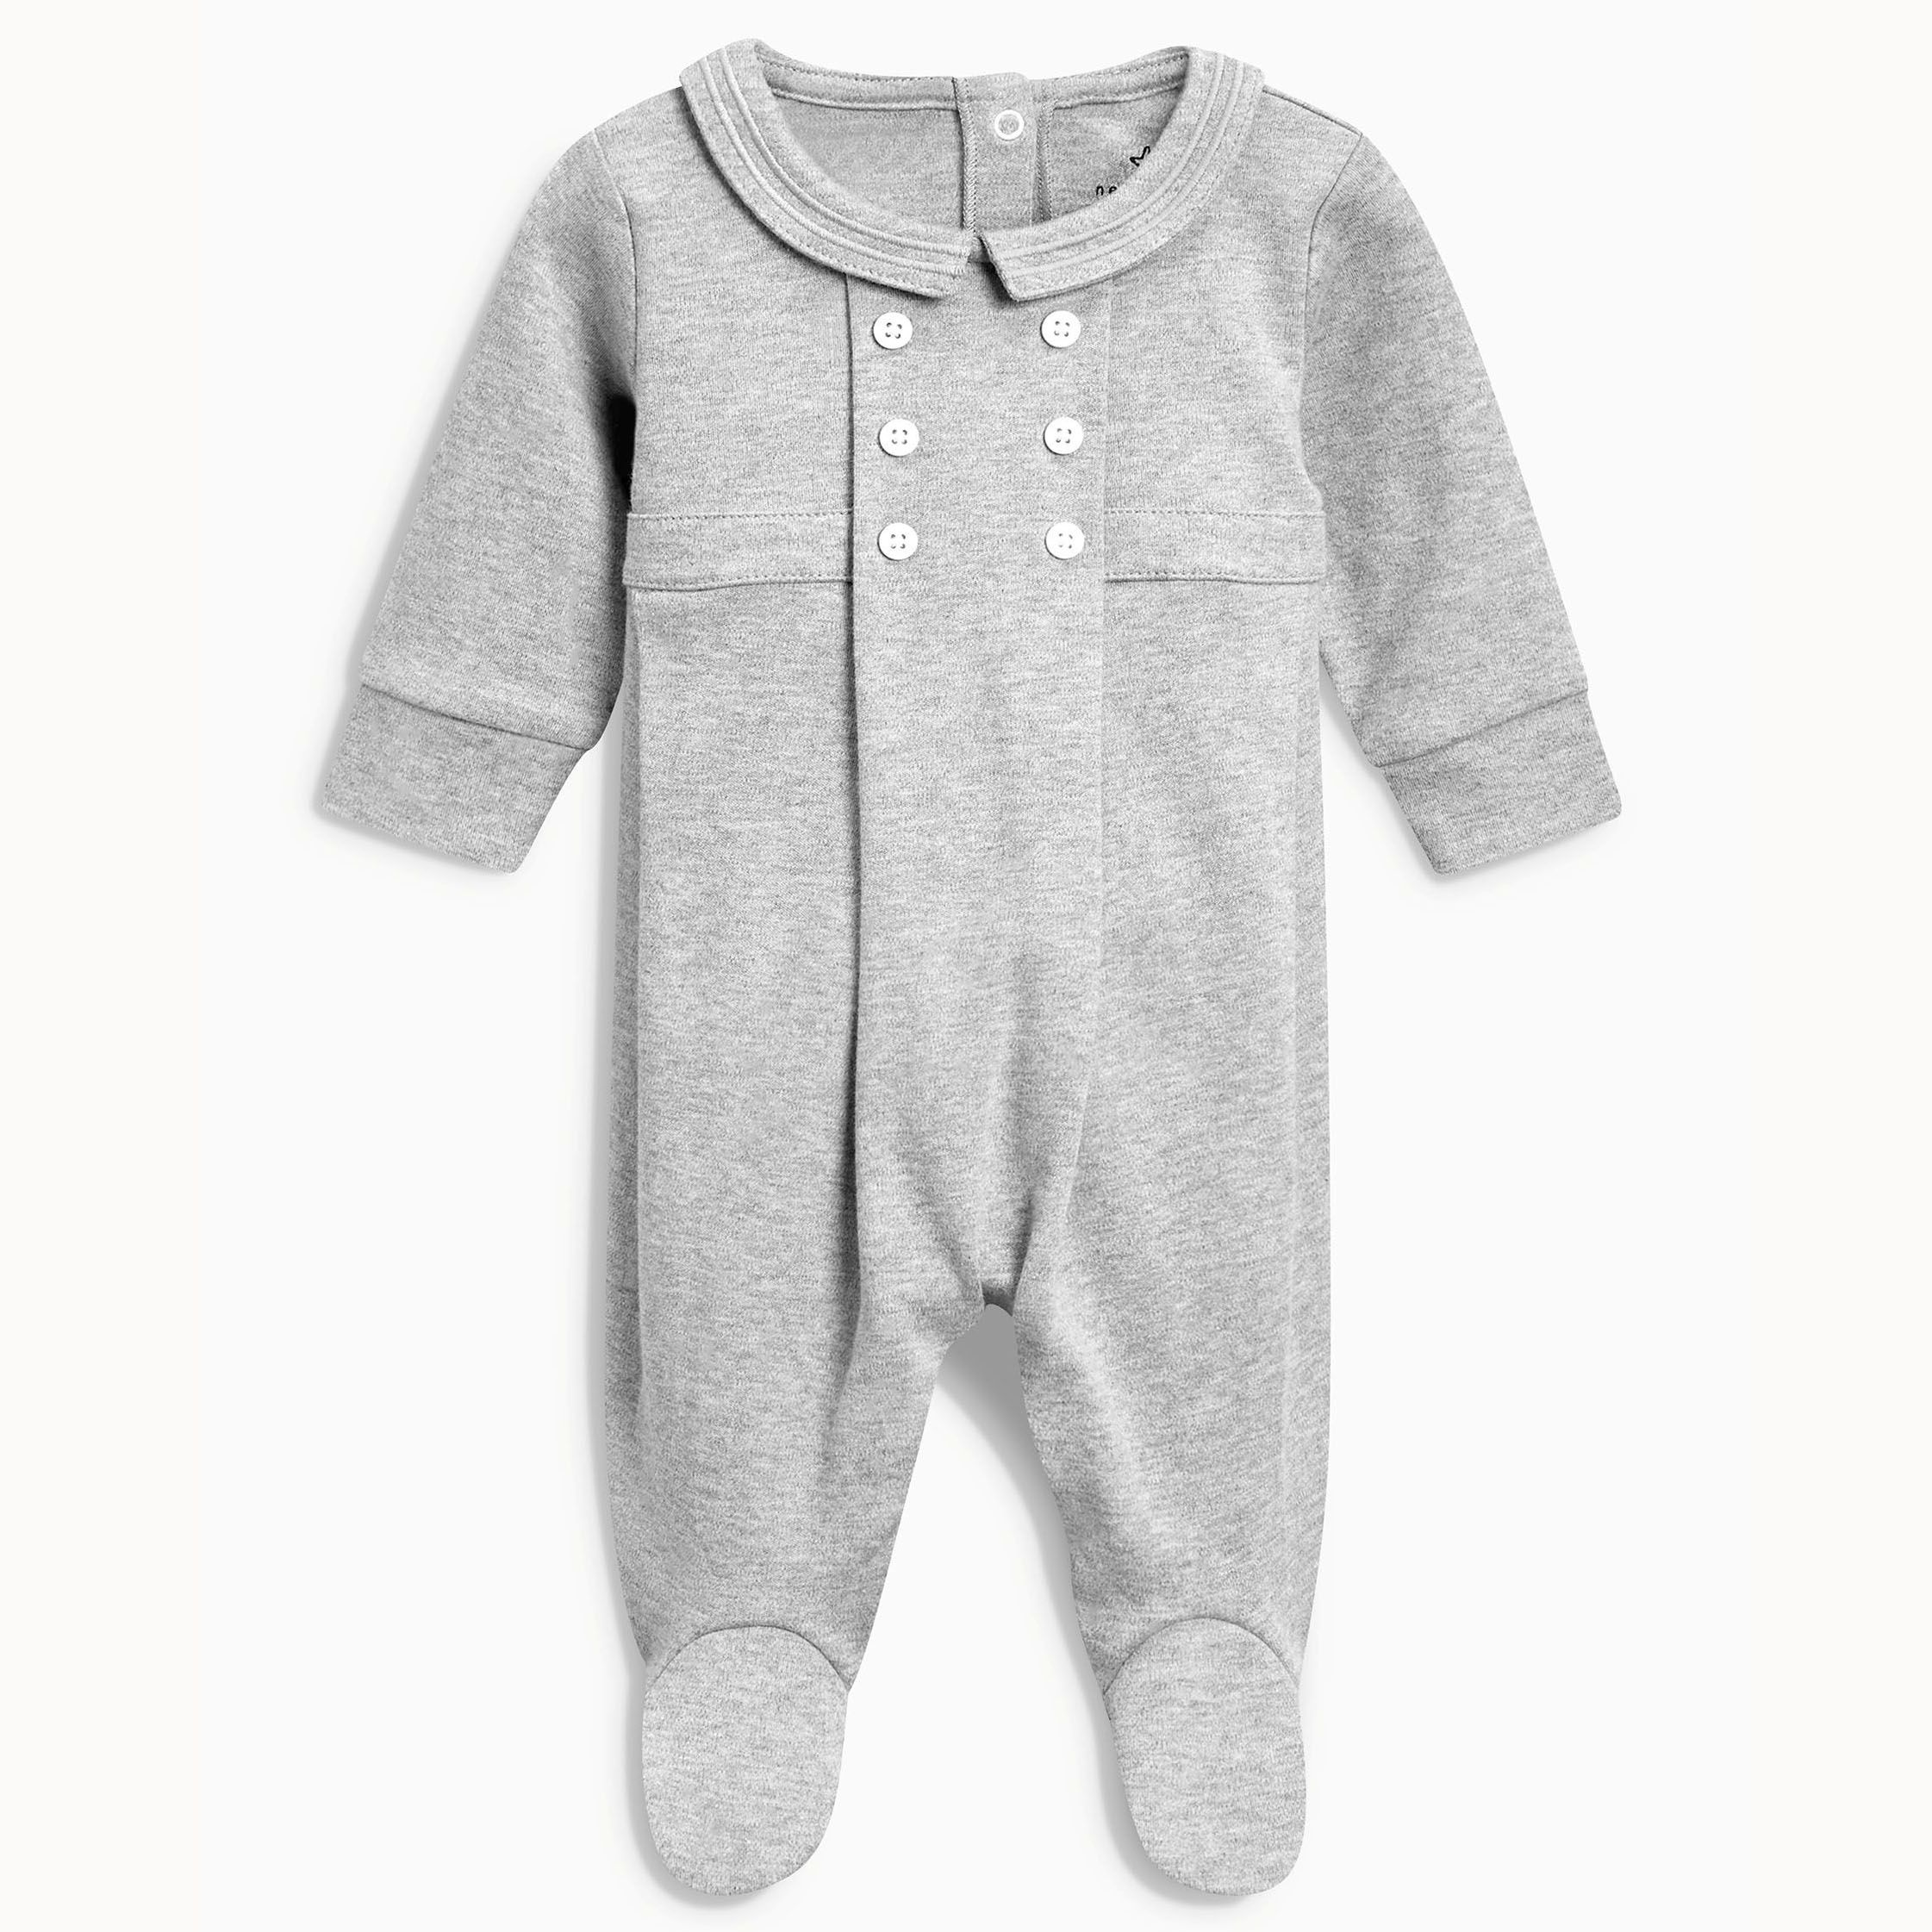 c19a5528a 20 gender-neutral baby grows we love - unisex baby clothes